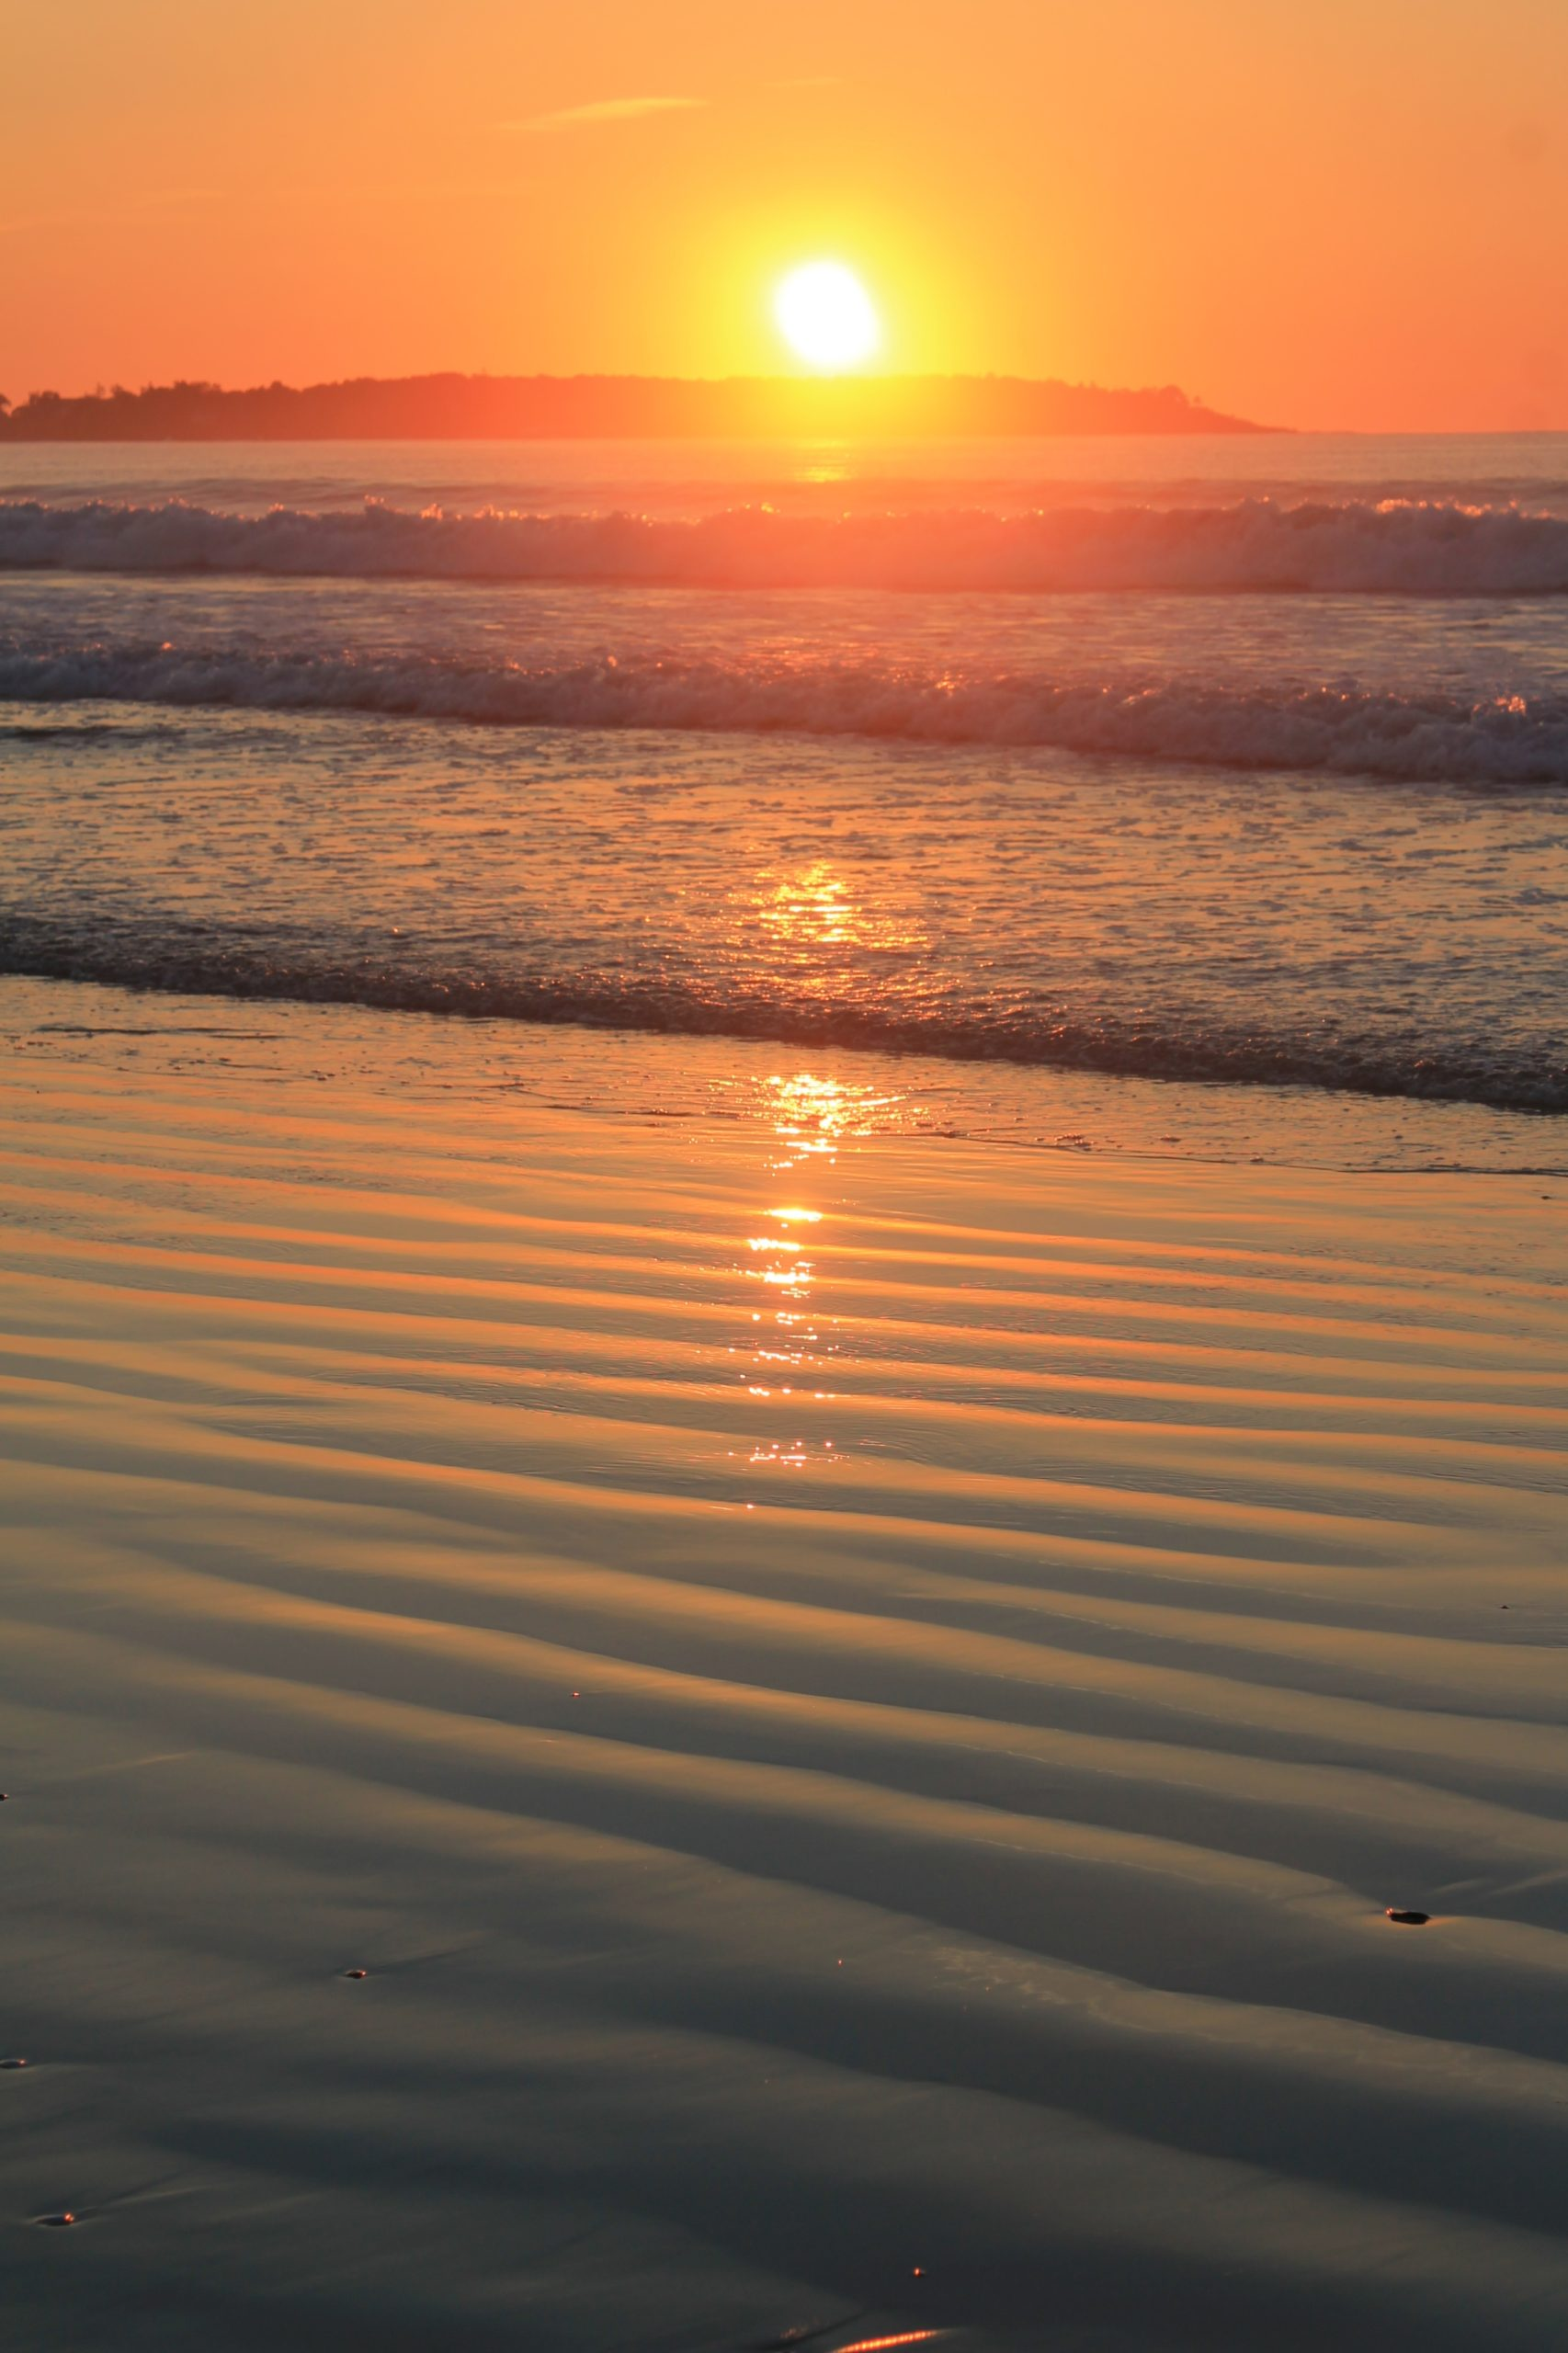 Sunset over gentle rolling waves on the ocean. She sun and sky look orange with no clouds to be seen.